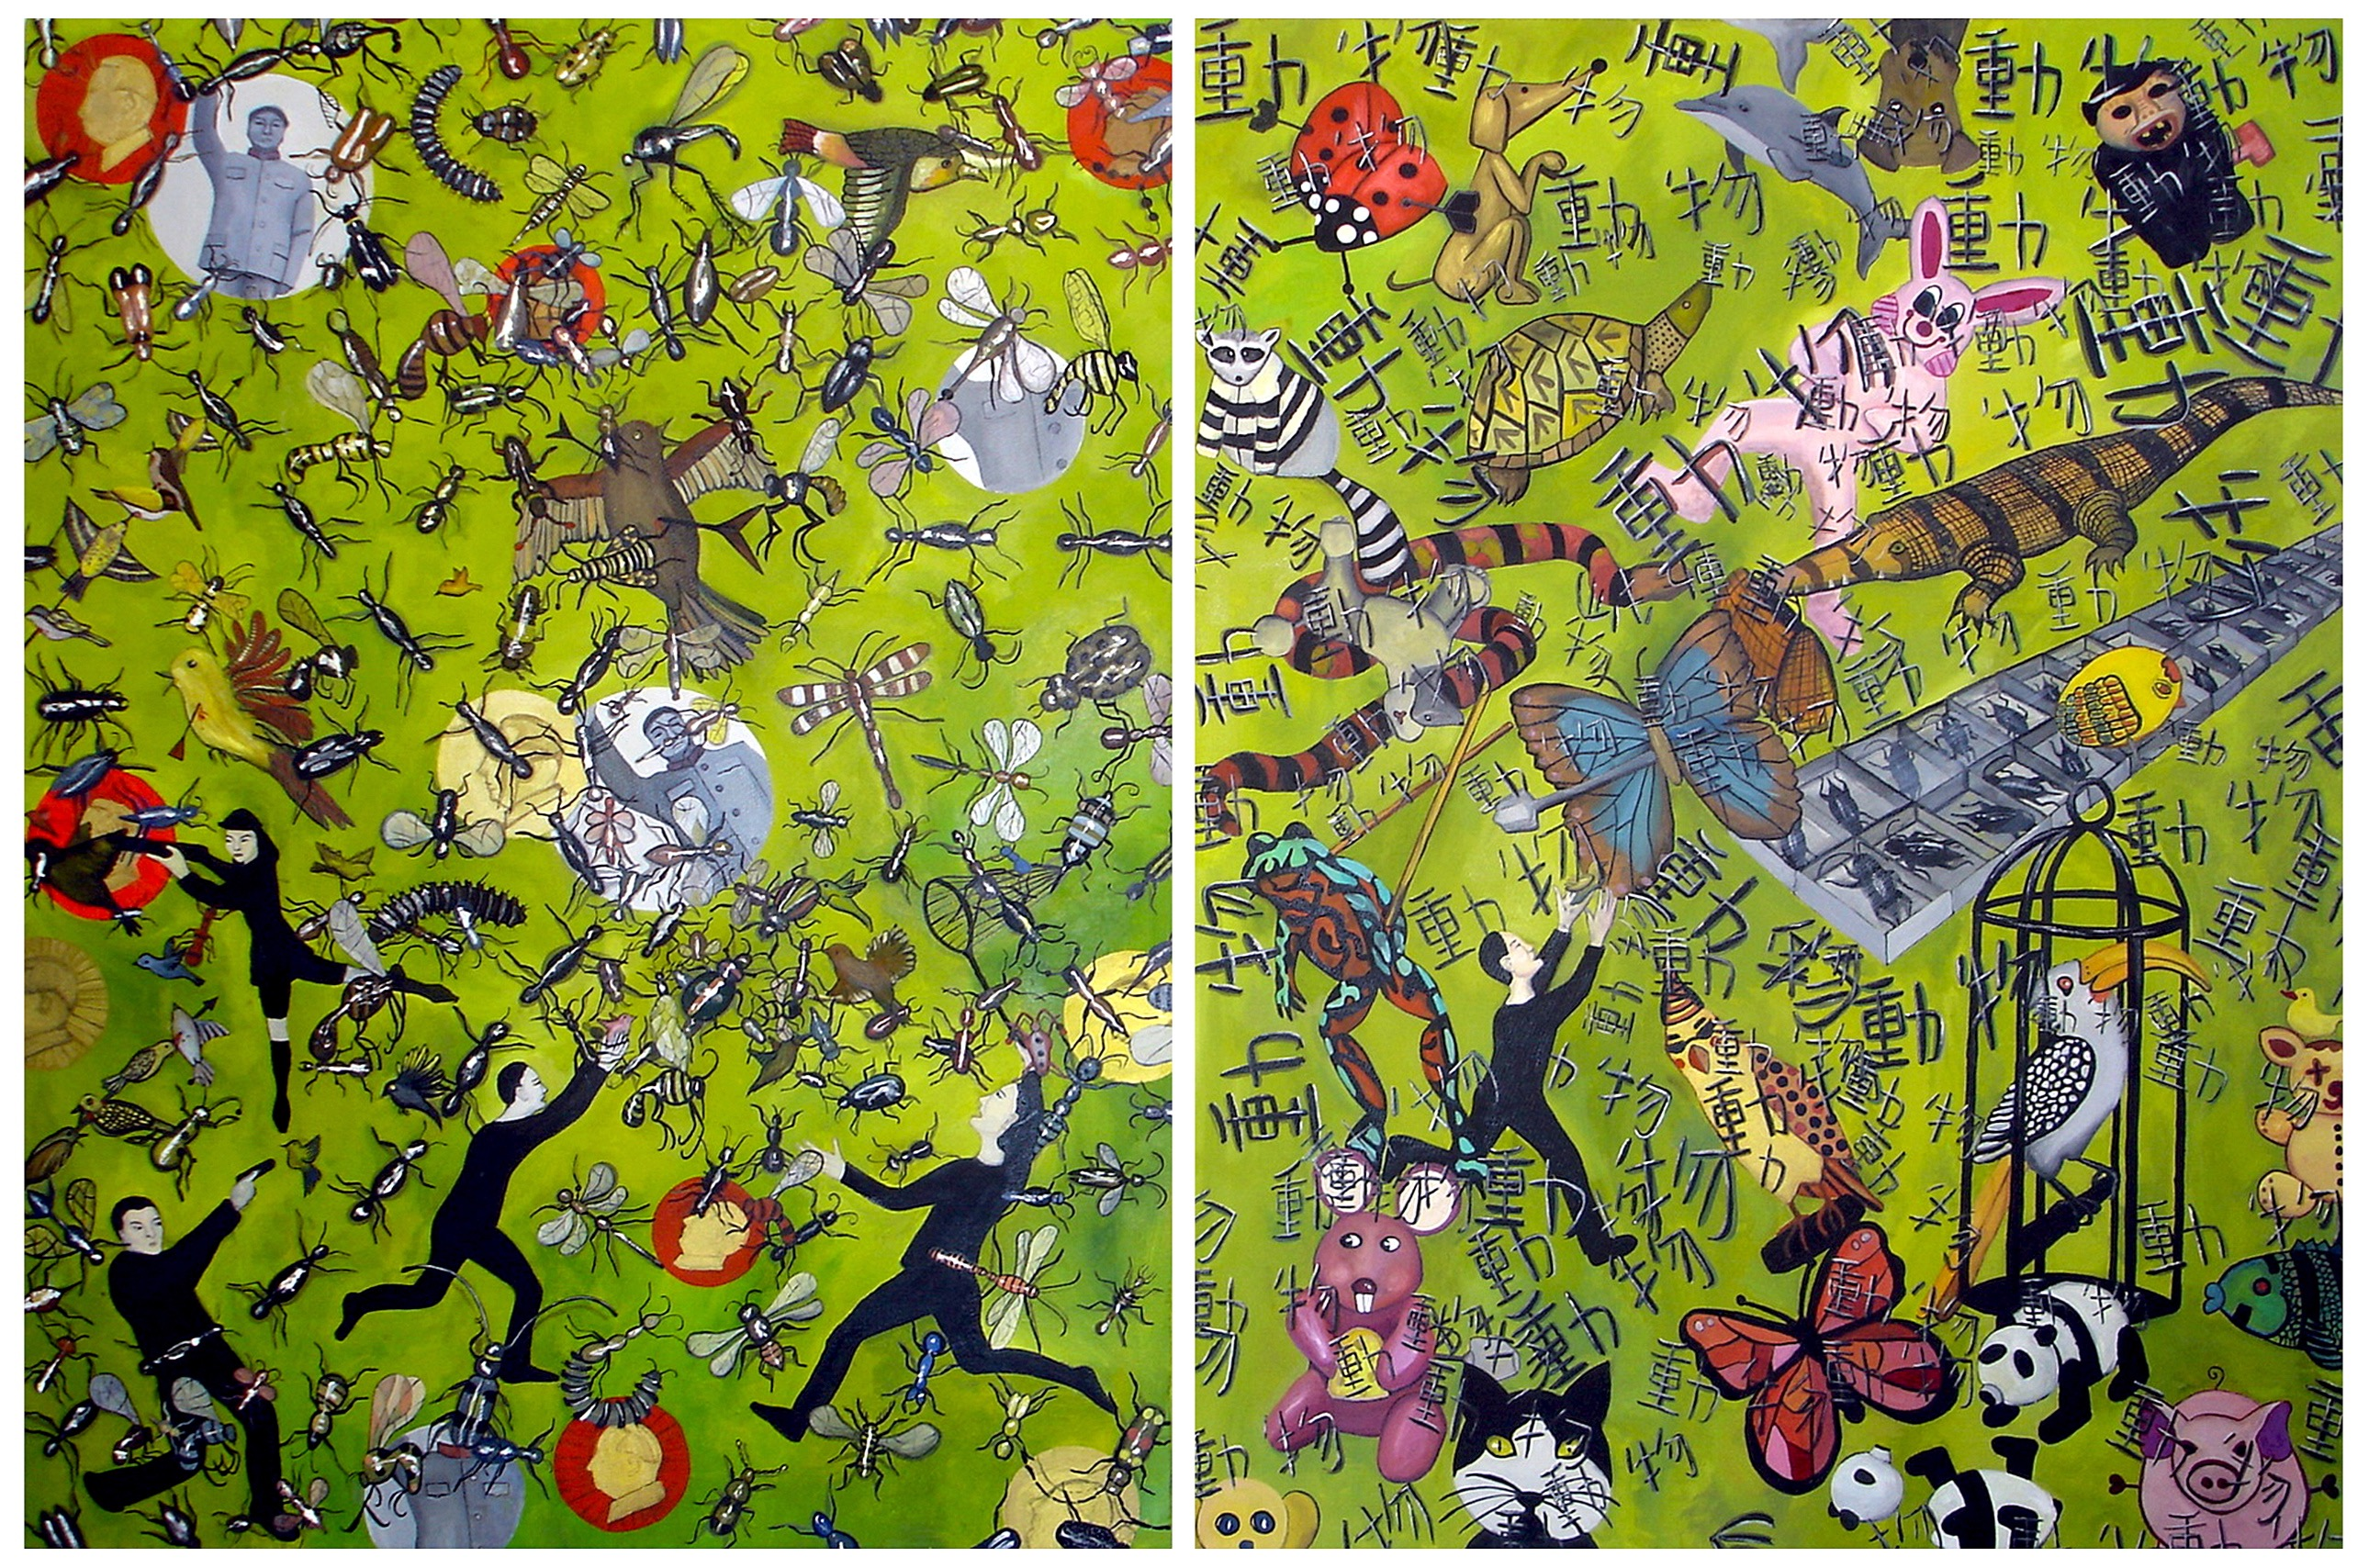 DONG WU (DIPTYCH) - 84CM X 104CM - OIL AND ACRYLIC ON ACRYLIC ON CANVAS - 2008